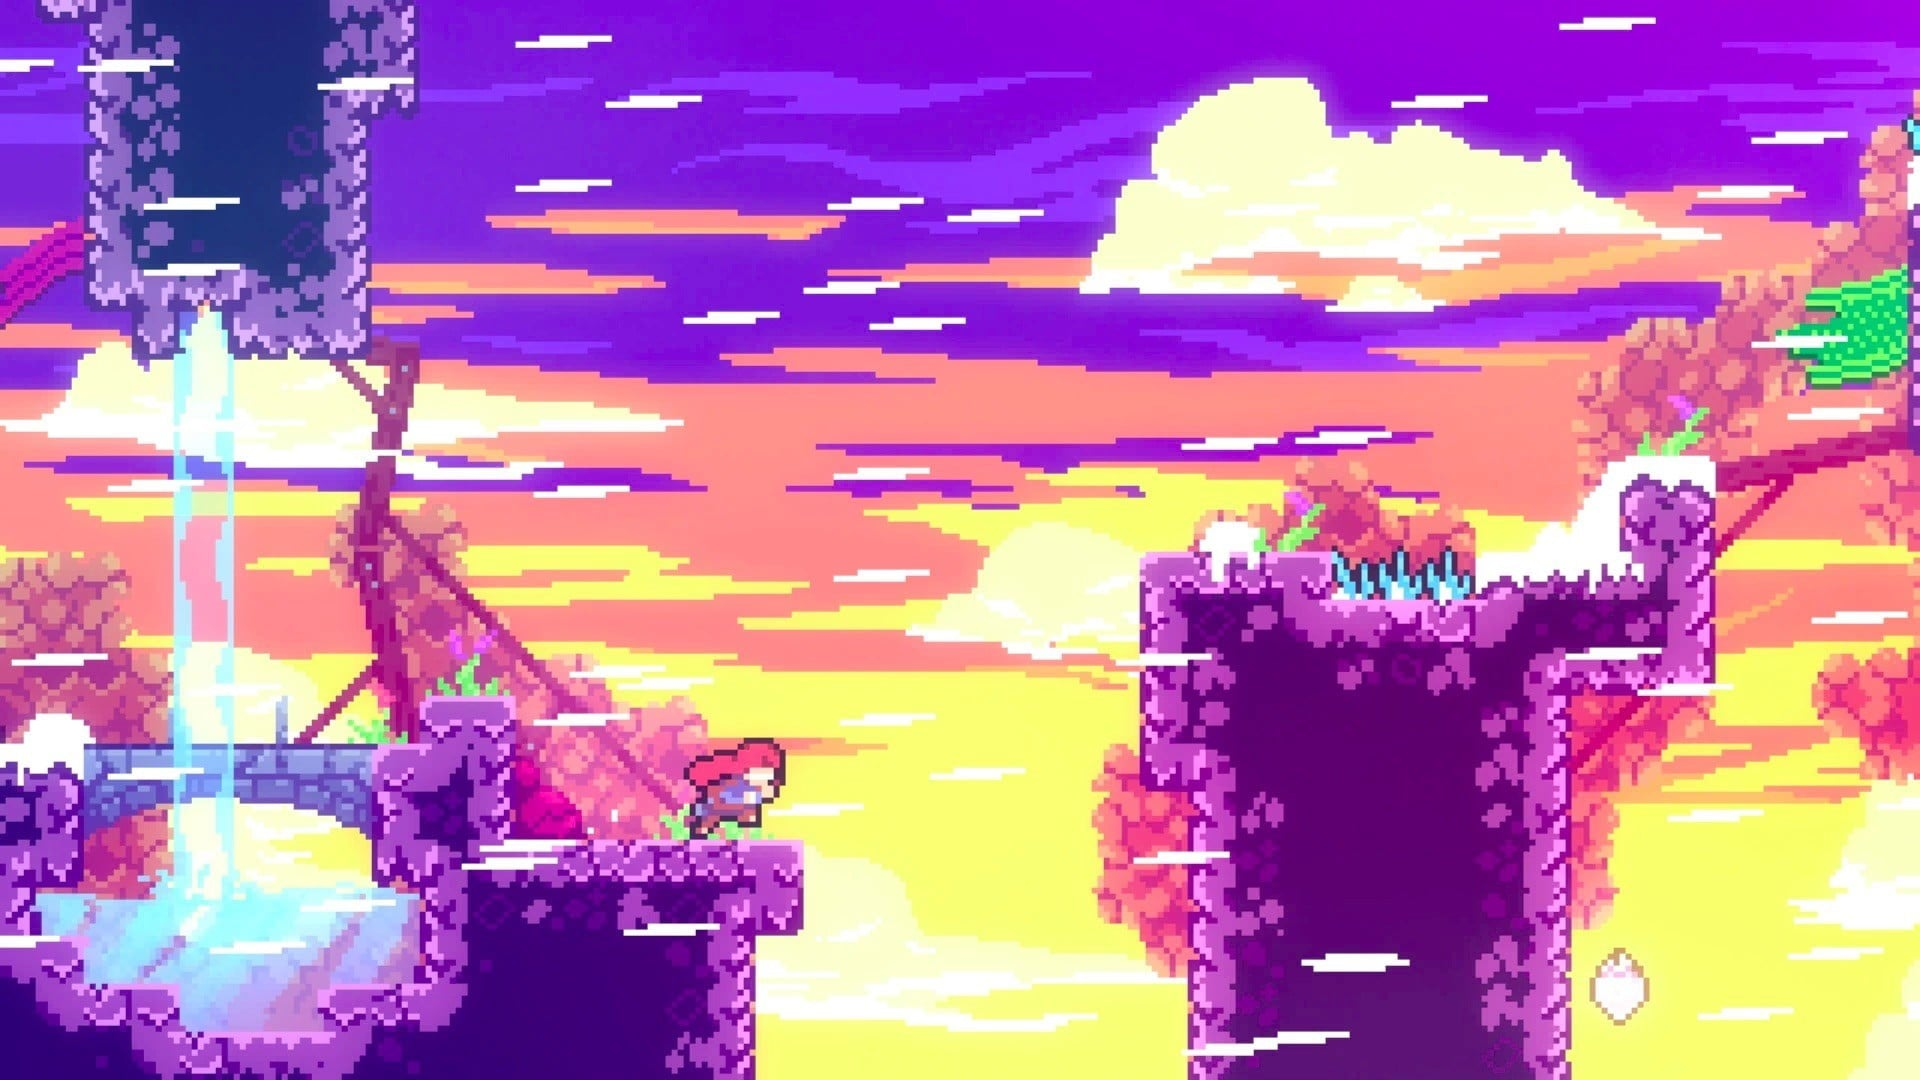 pixel-art-and-retro-game-revival-05-celeste.jpg